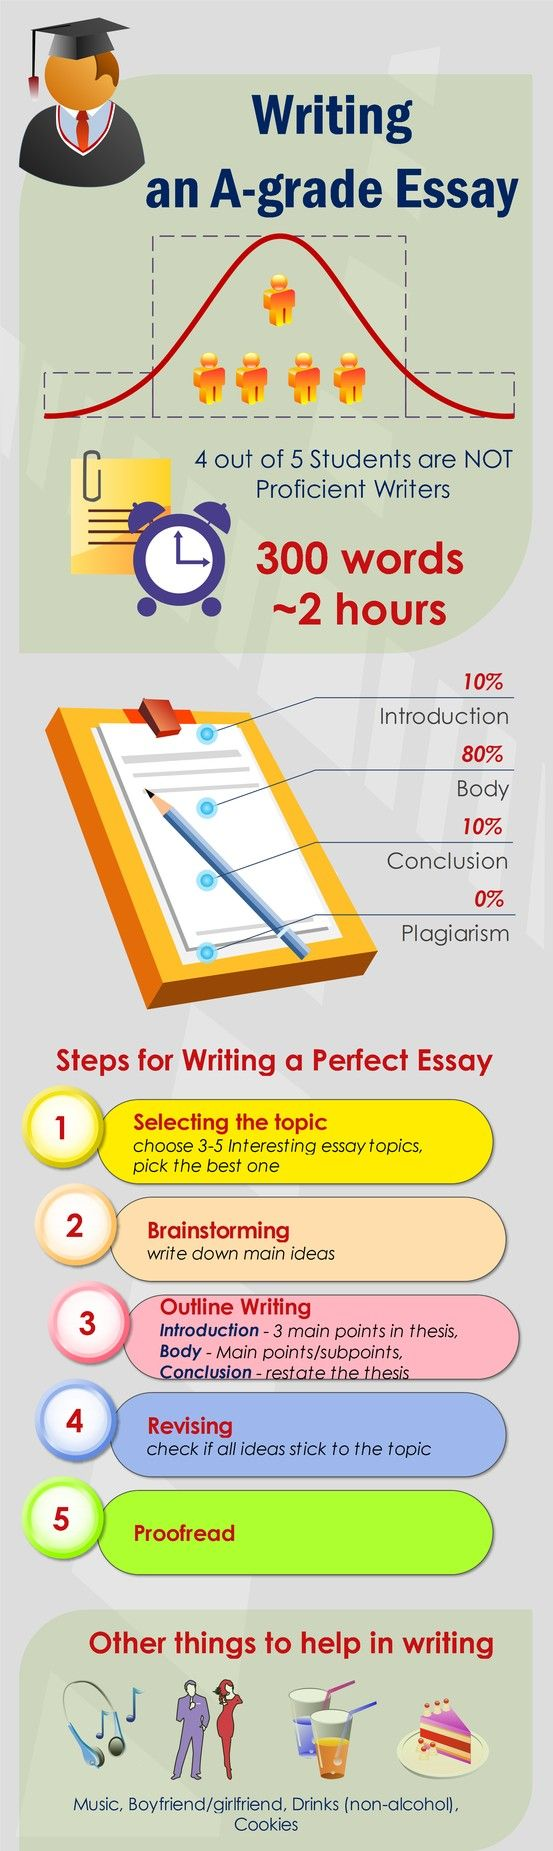 best images about essay writing writing an essay writing an a grade essay professional essay writing service at 4essay com